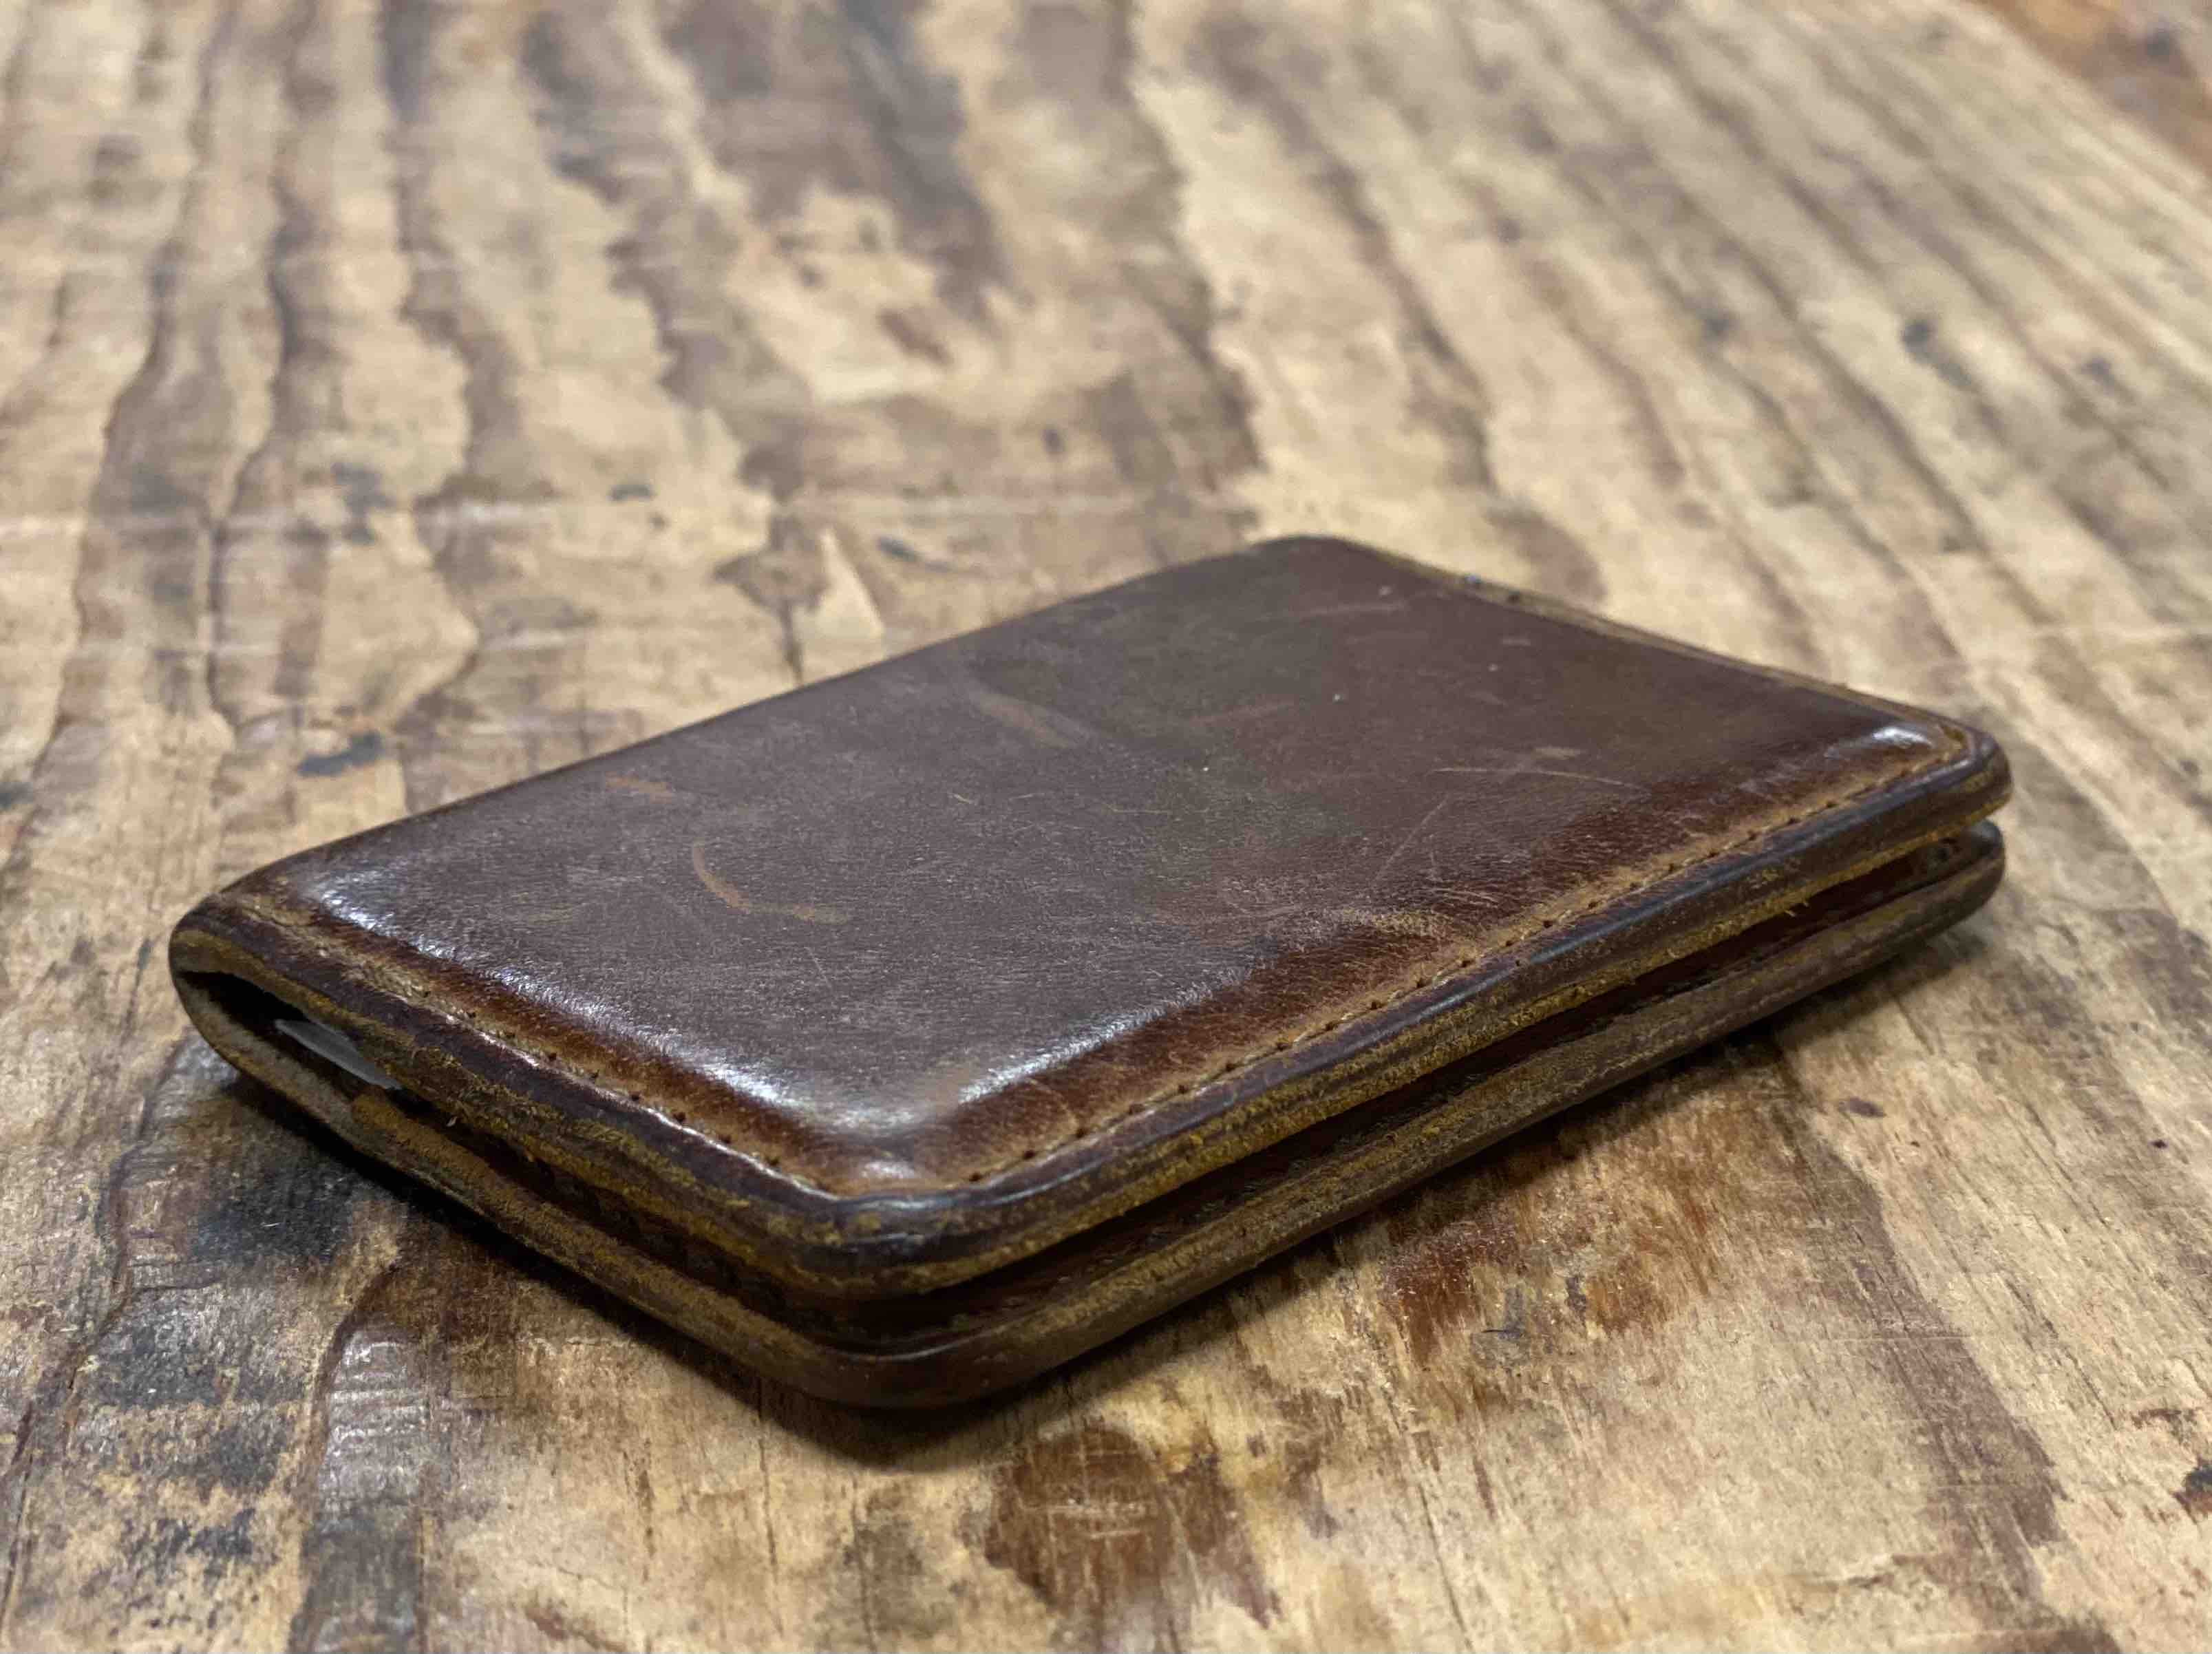 Leather business card holder that has been used and now has a nice patina. Some use it as a minimalist wallet